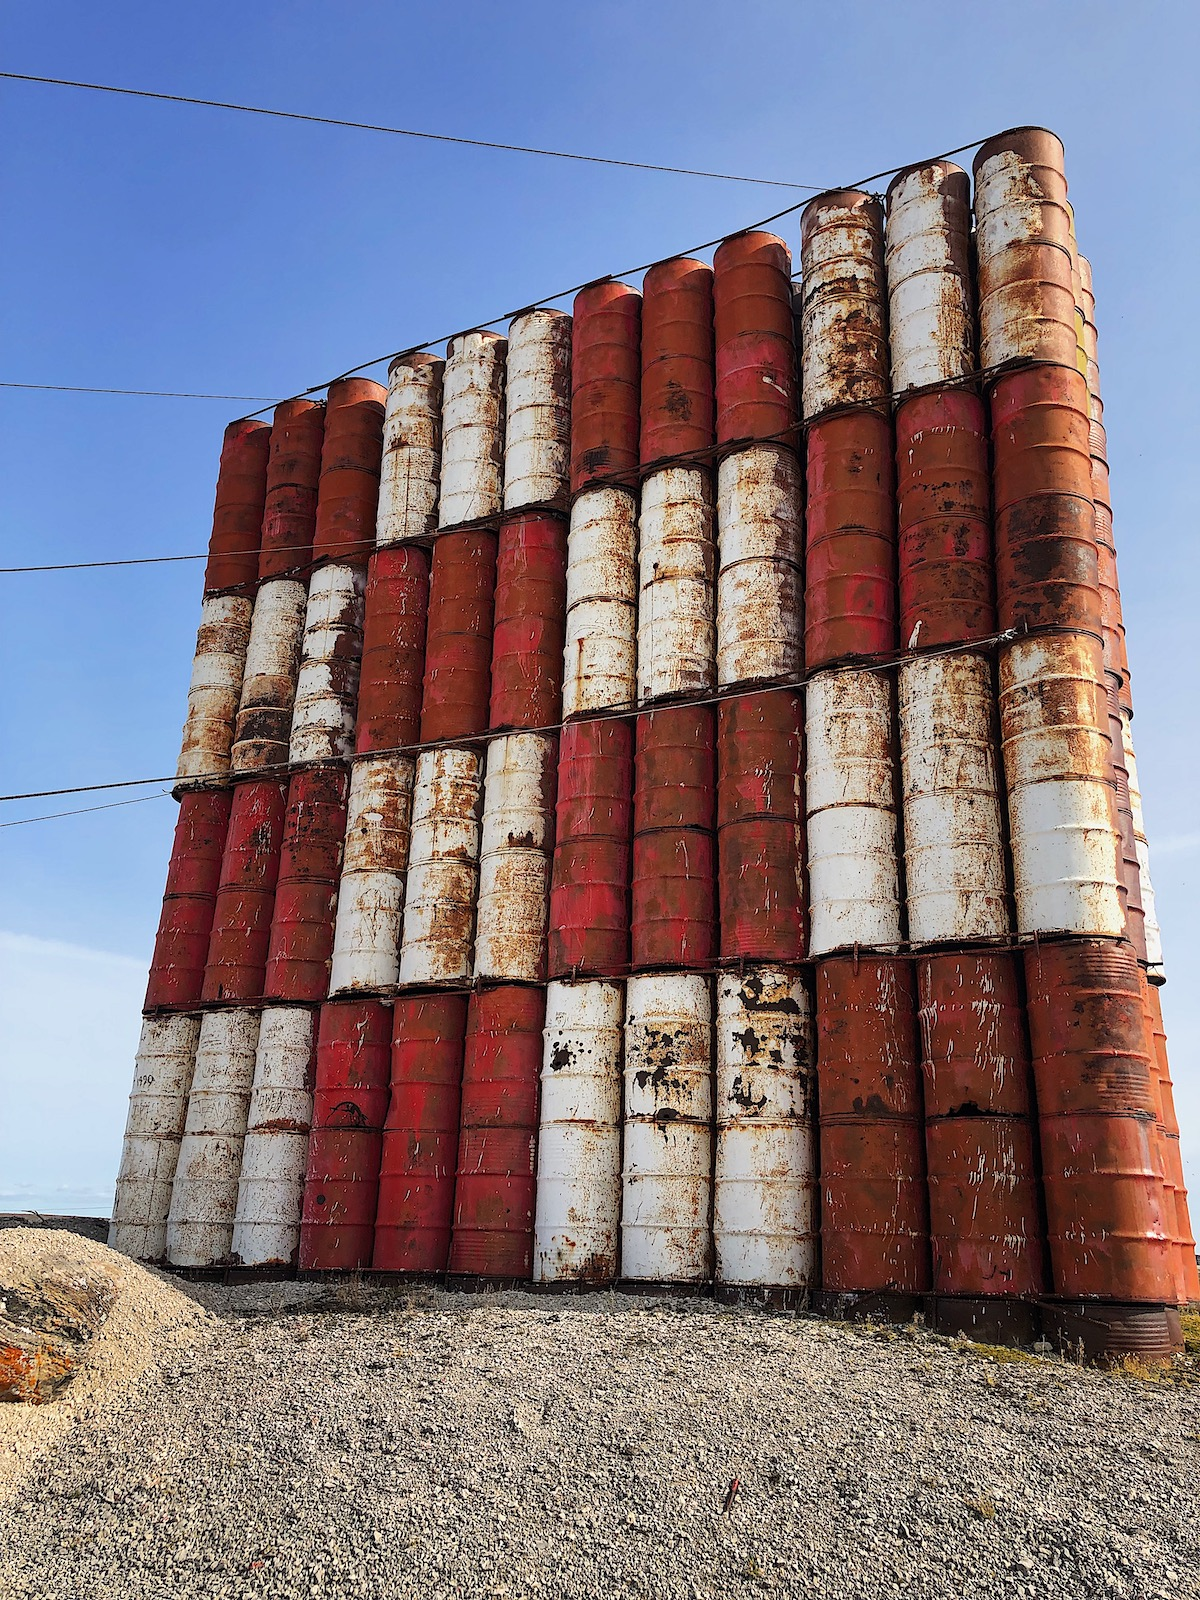 A large wall comprised of barrels arranged in a red and white checked pattern.